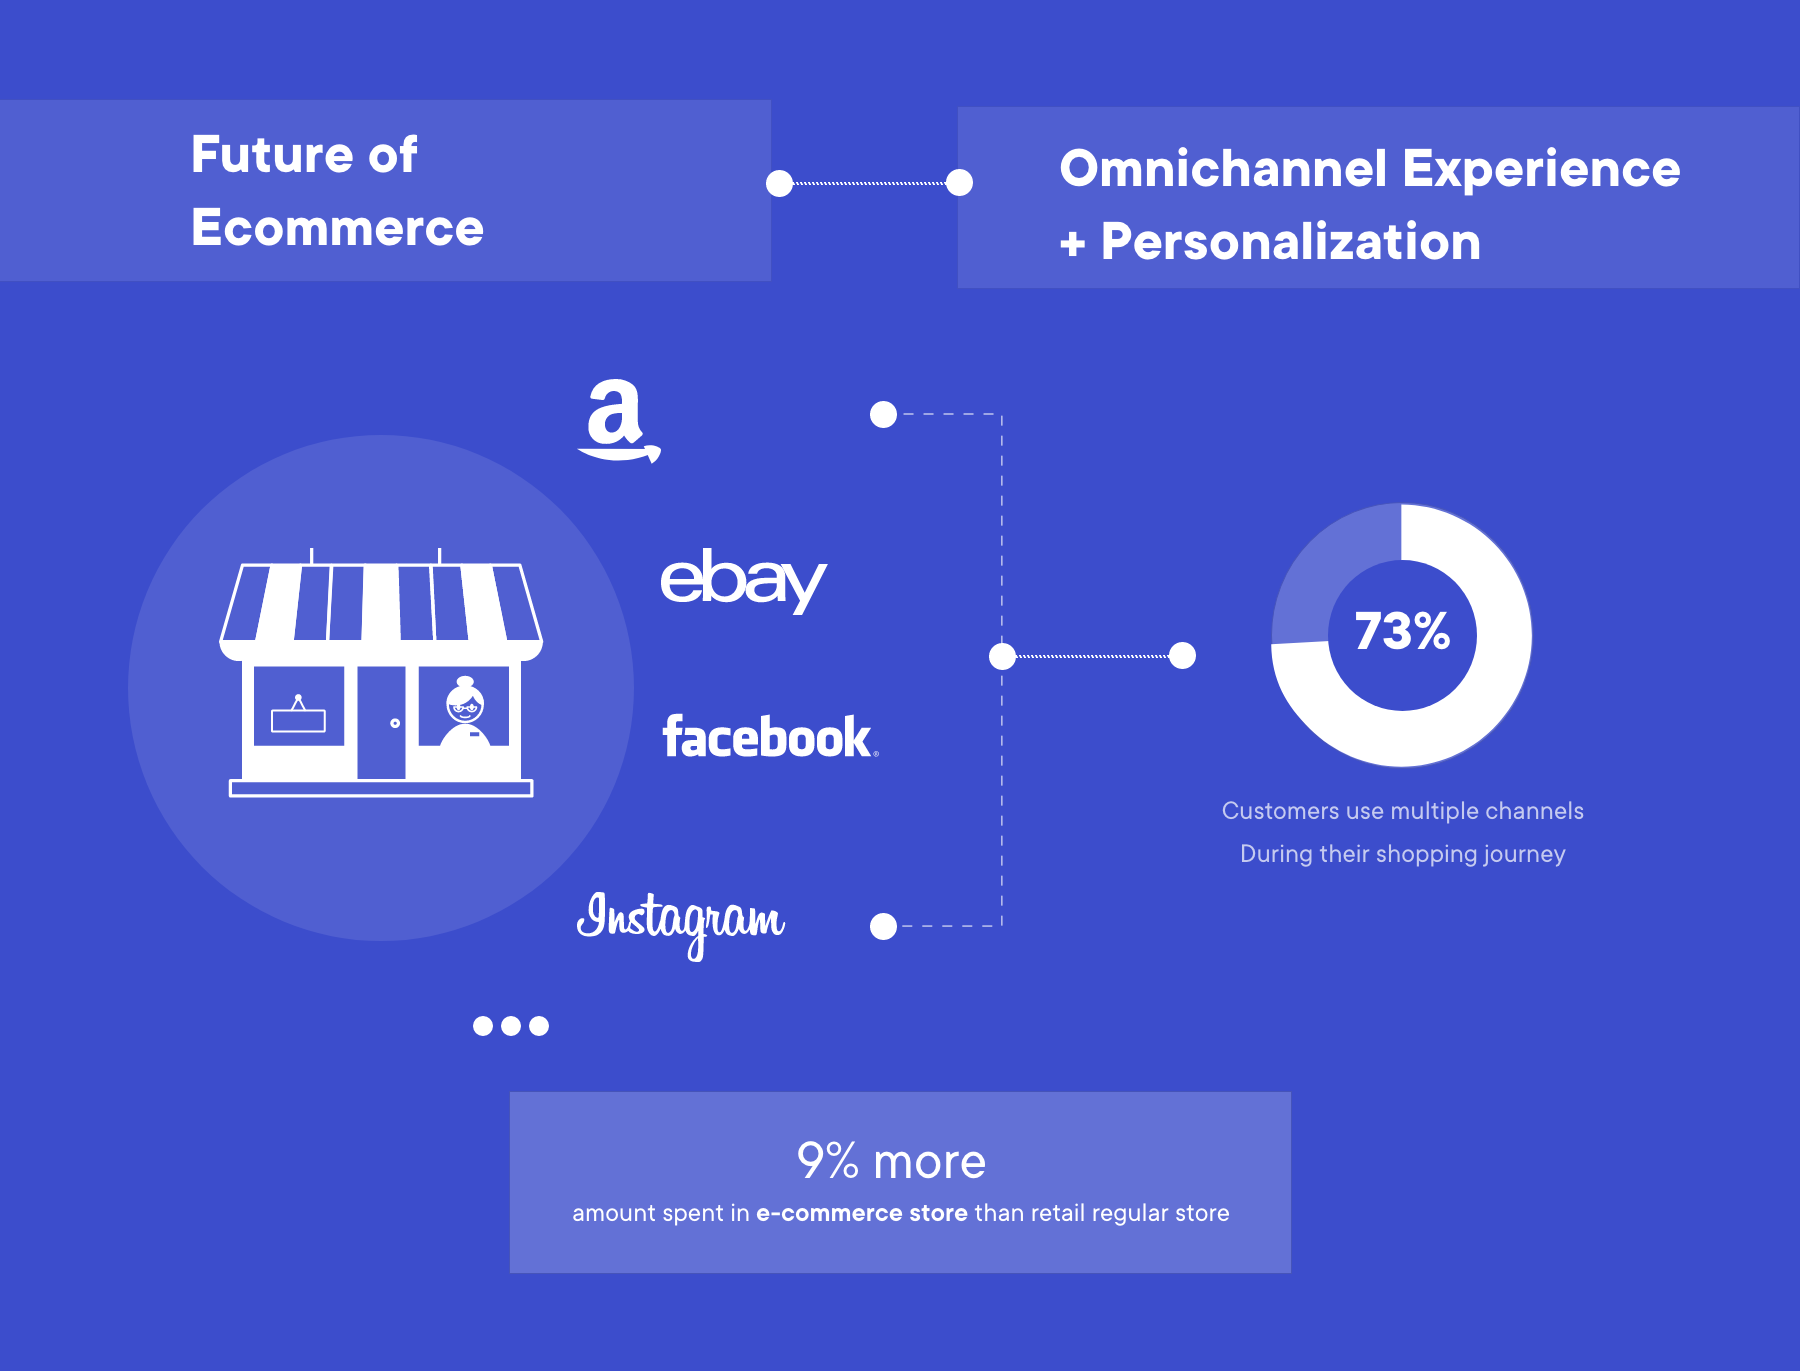 ecommerce omnichannel experience